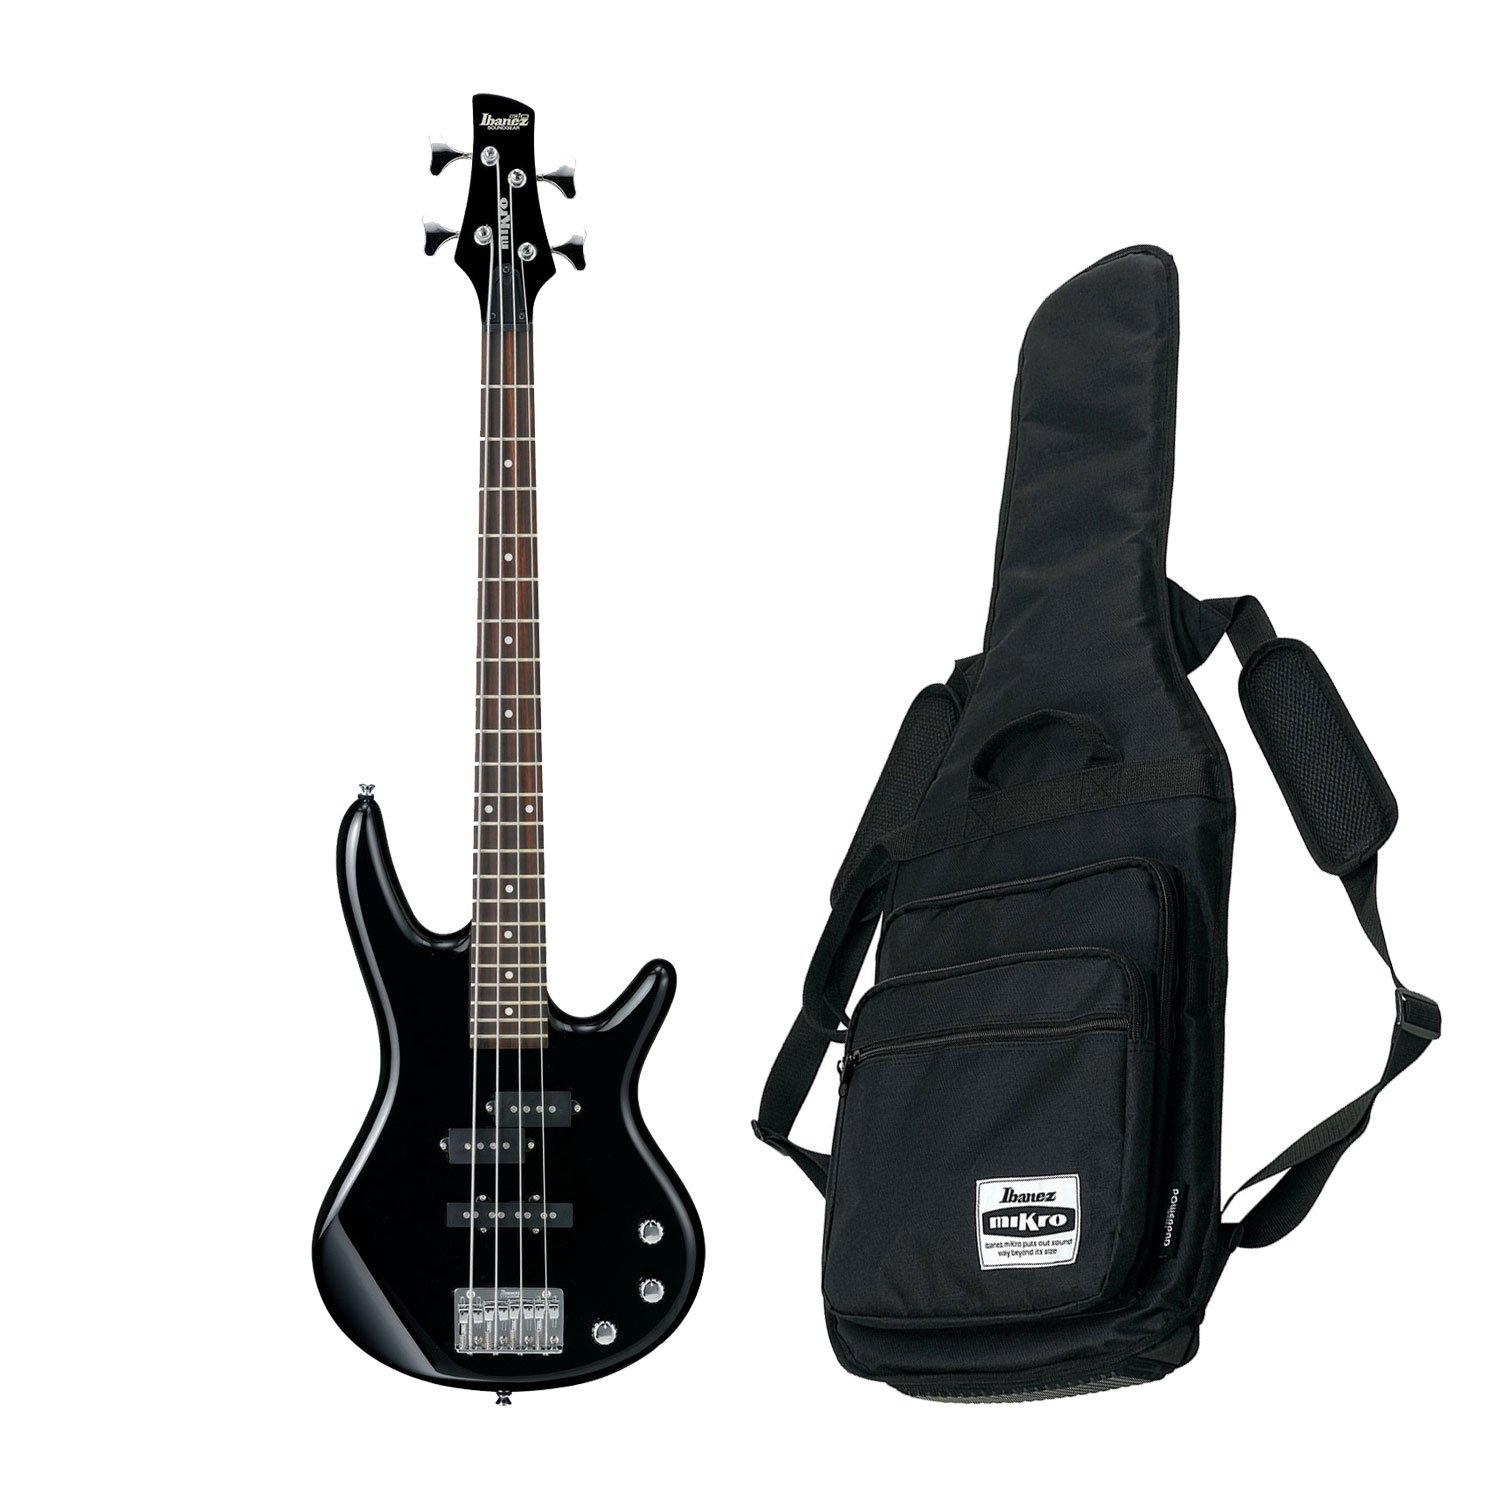 Ibanez GSR Mikro Compact Electric Bass Guitar (Black) w/ Free Ibanez Gig Bag GSRM20BK BUNDLE